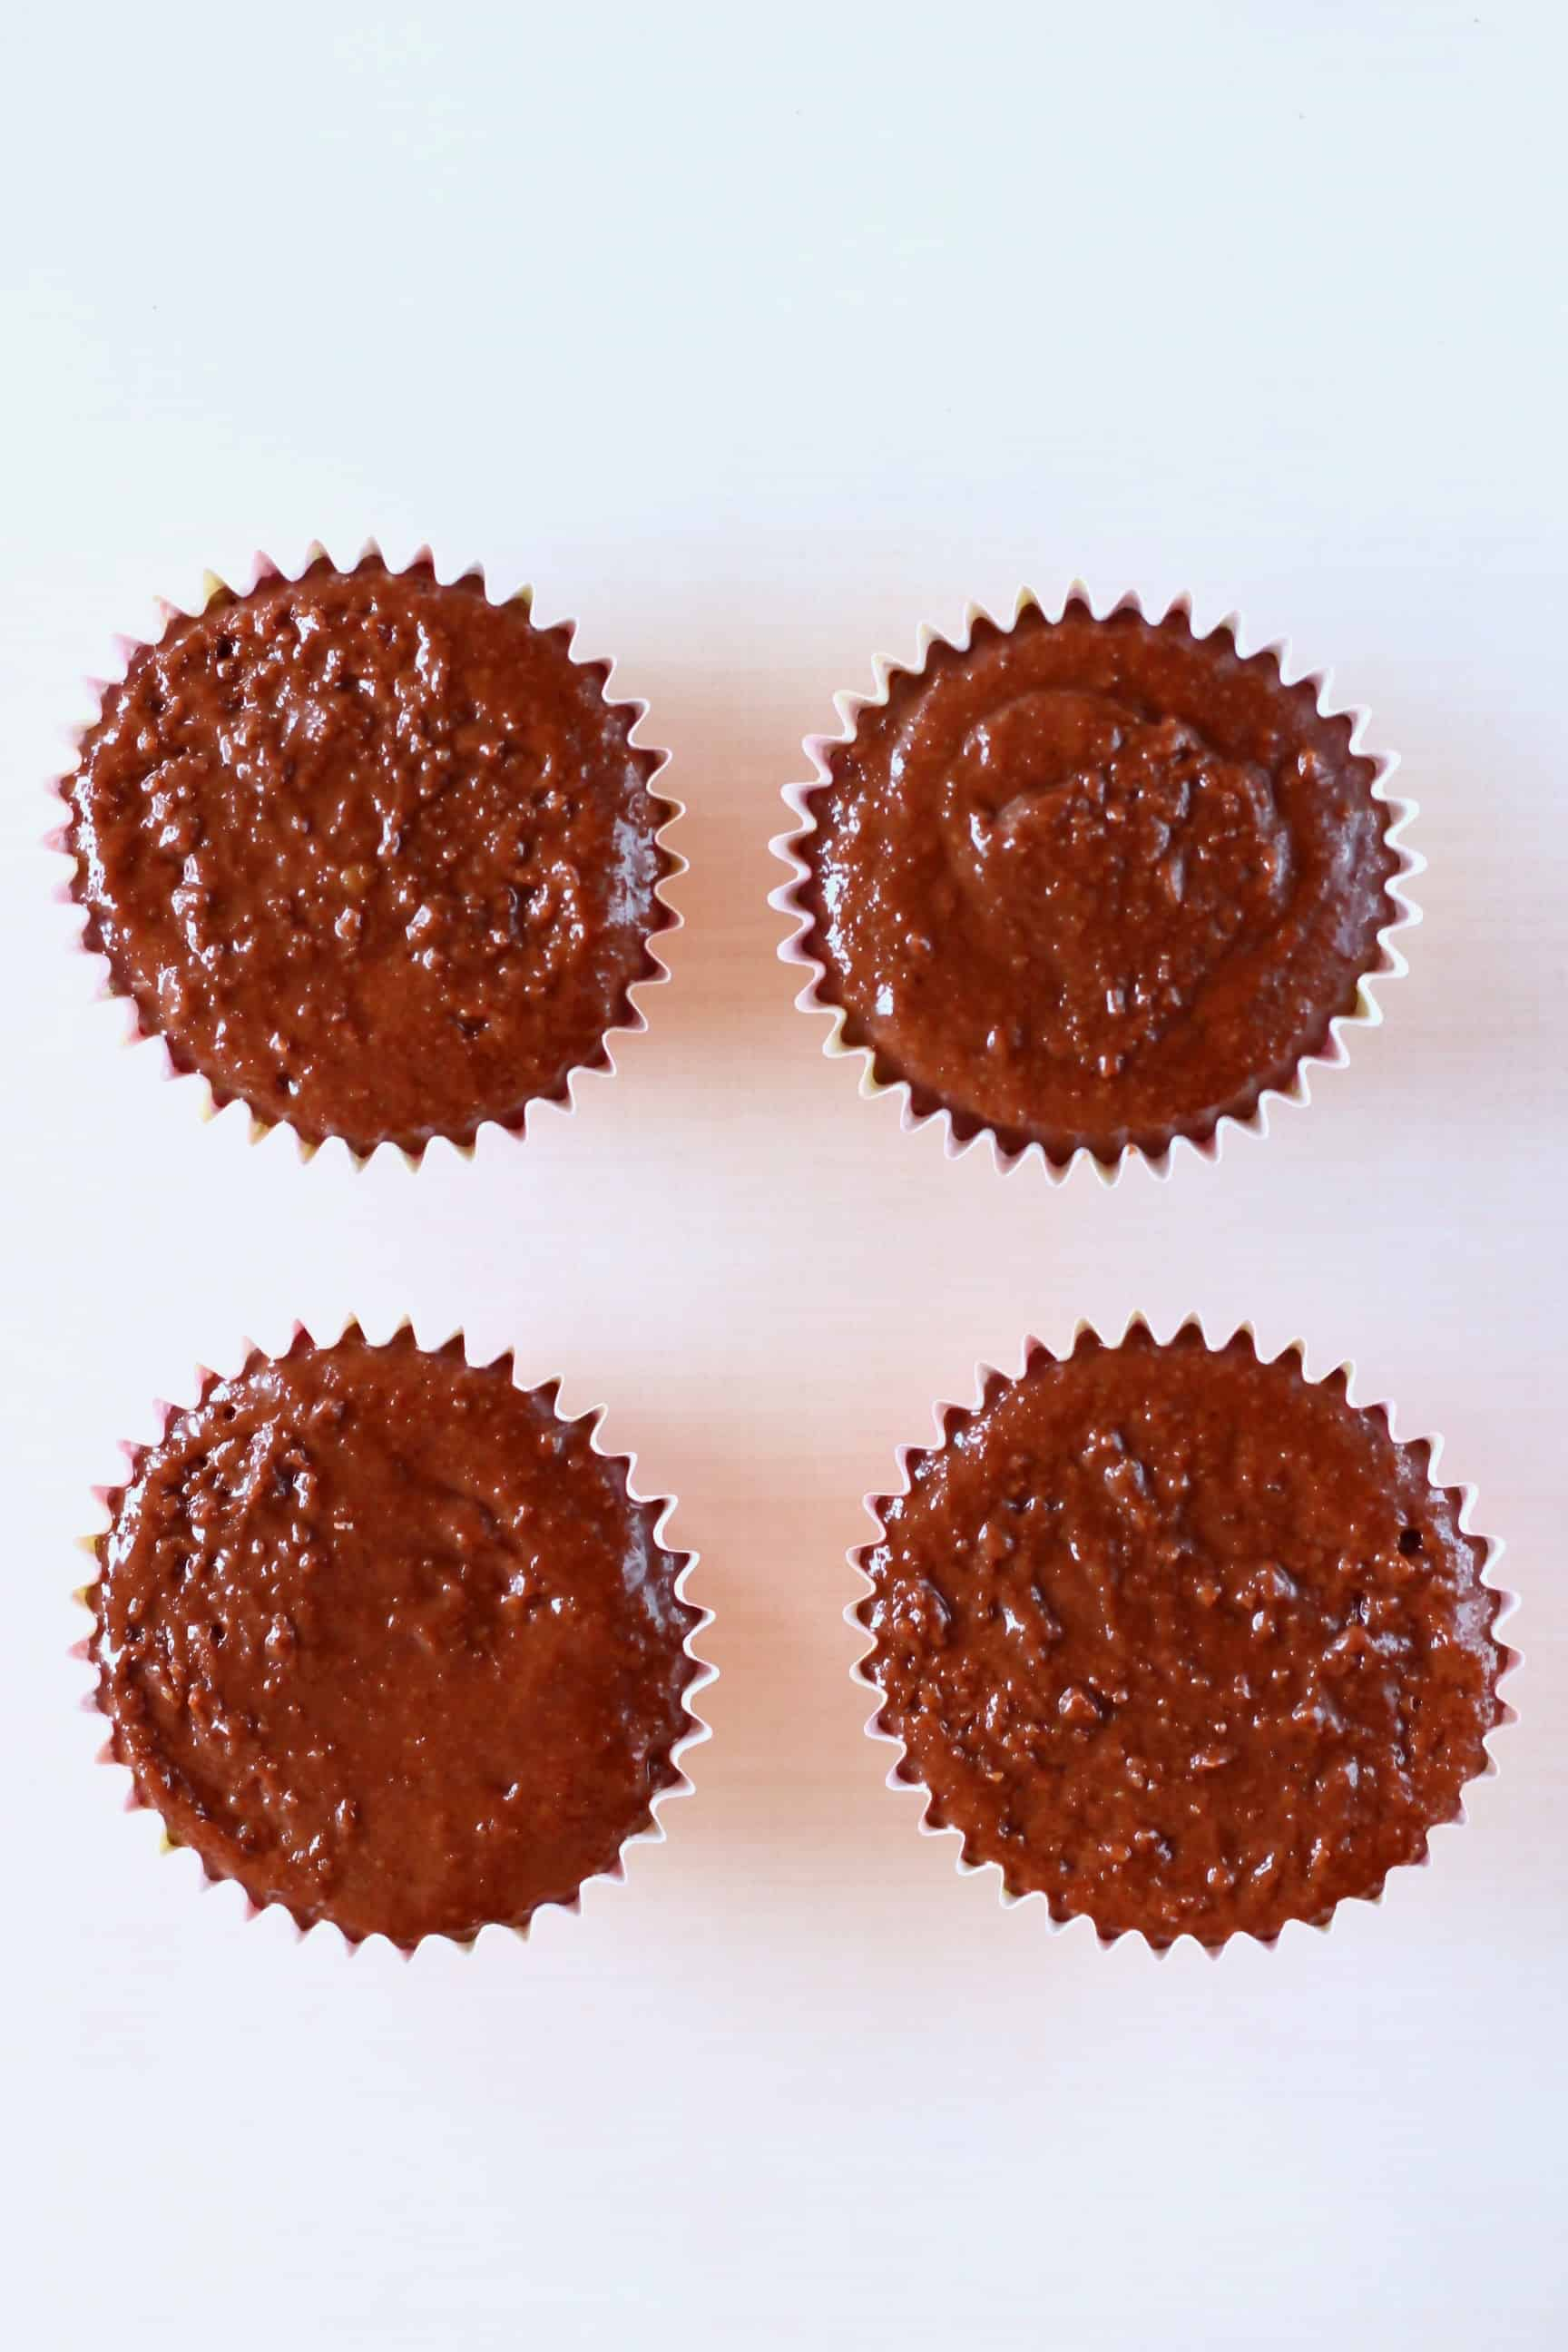 Four cupcake cases filled with raw gluten-free vegan chocolate cupcakes batter